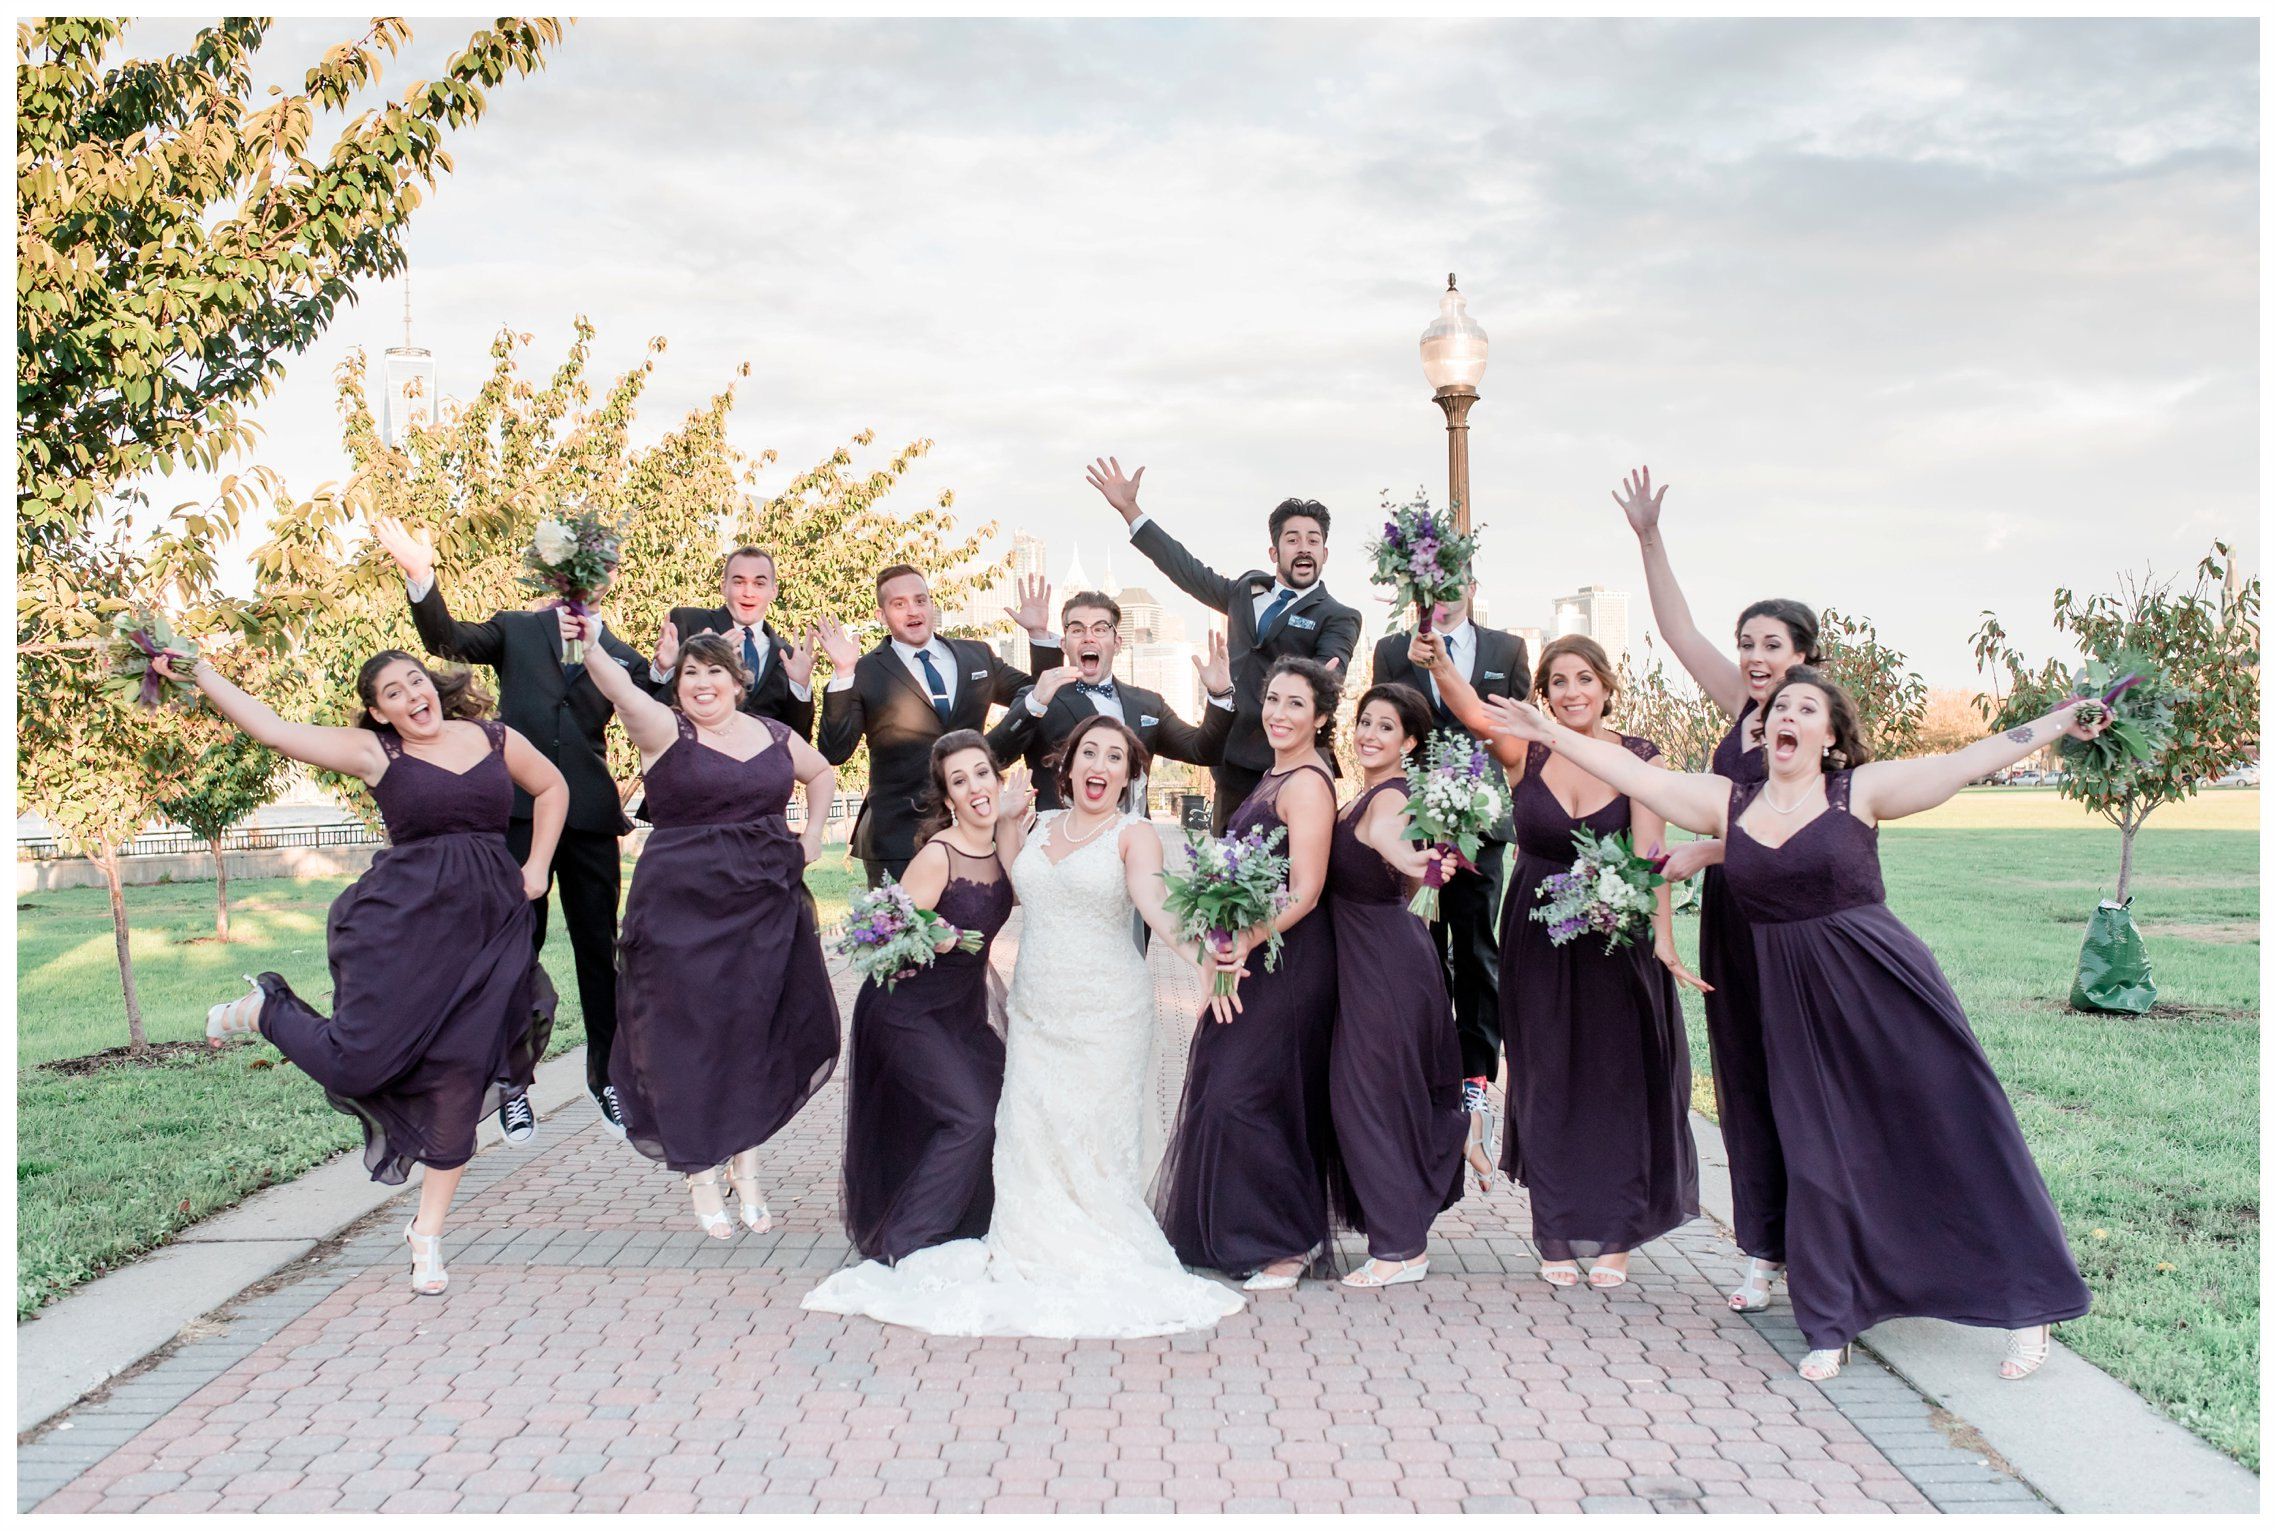 bridal party fun photos at the liberty house restaurant in jersey city new jersey